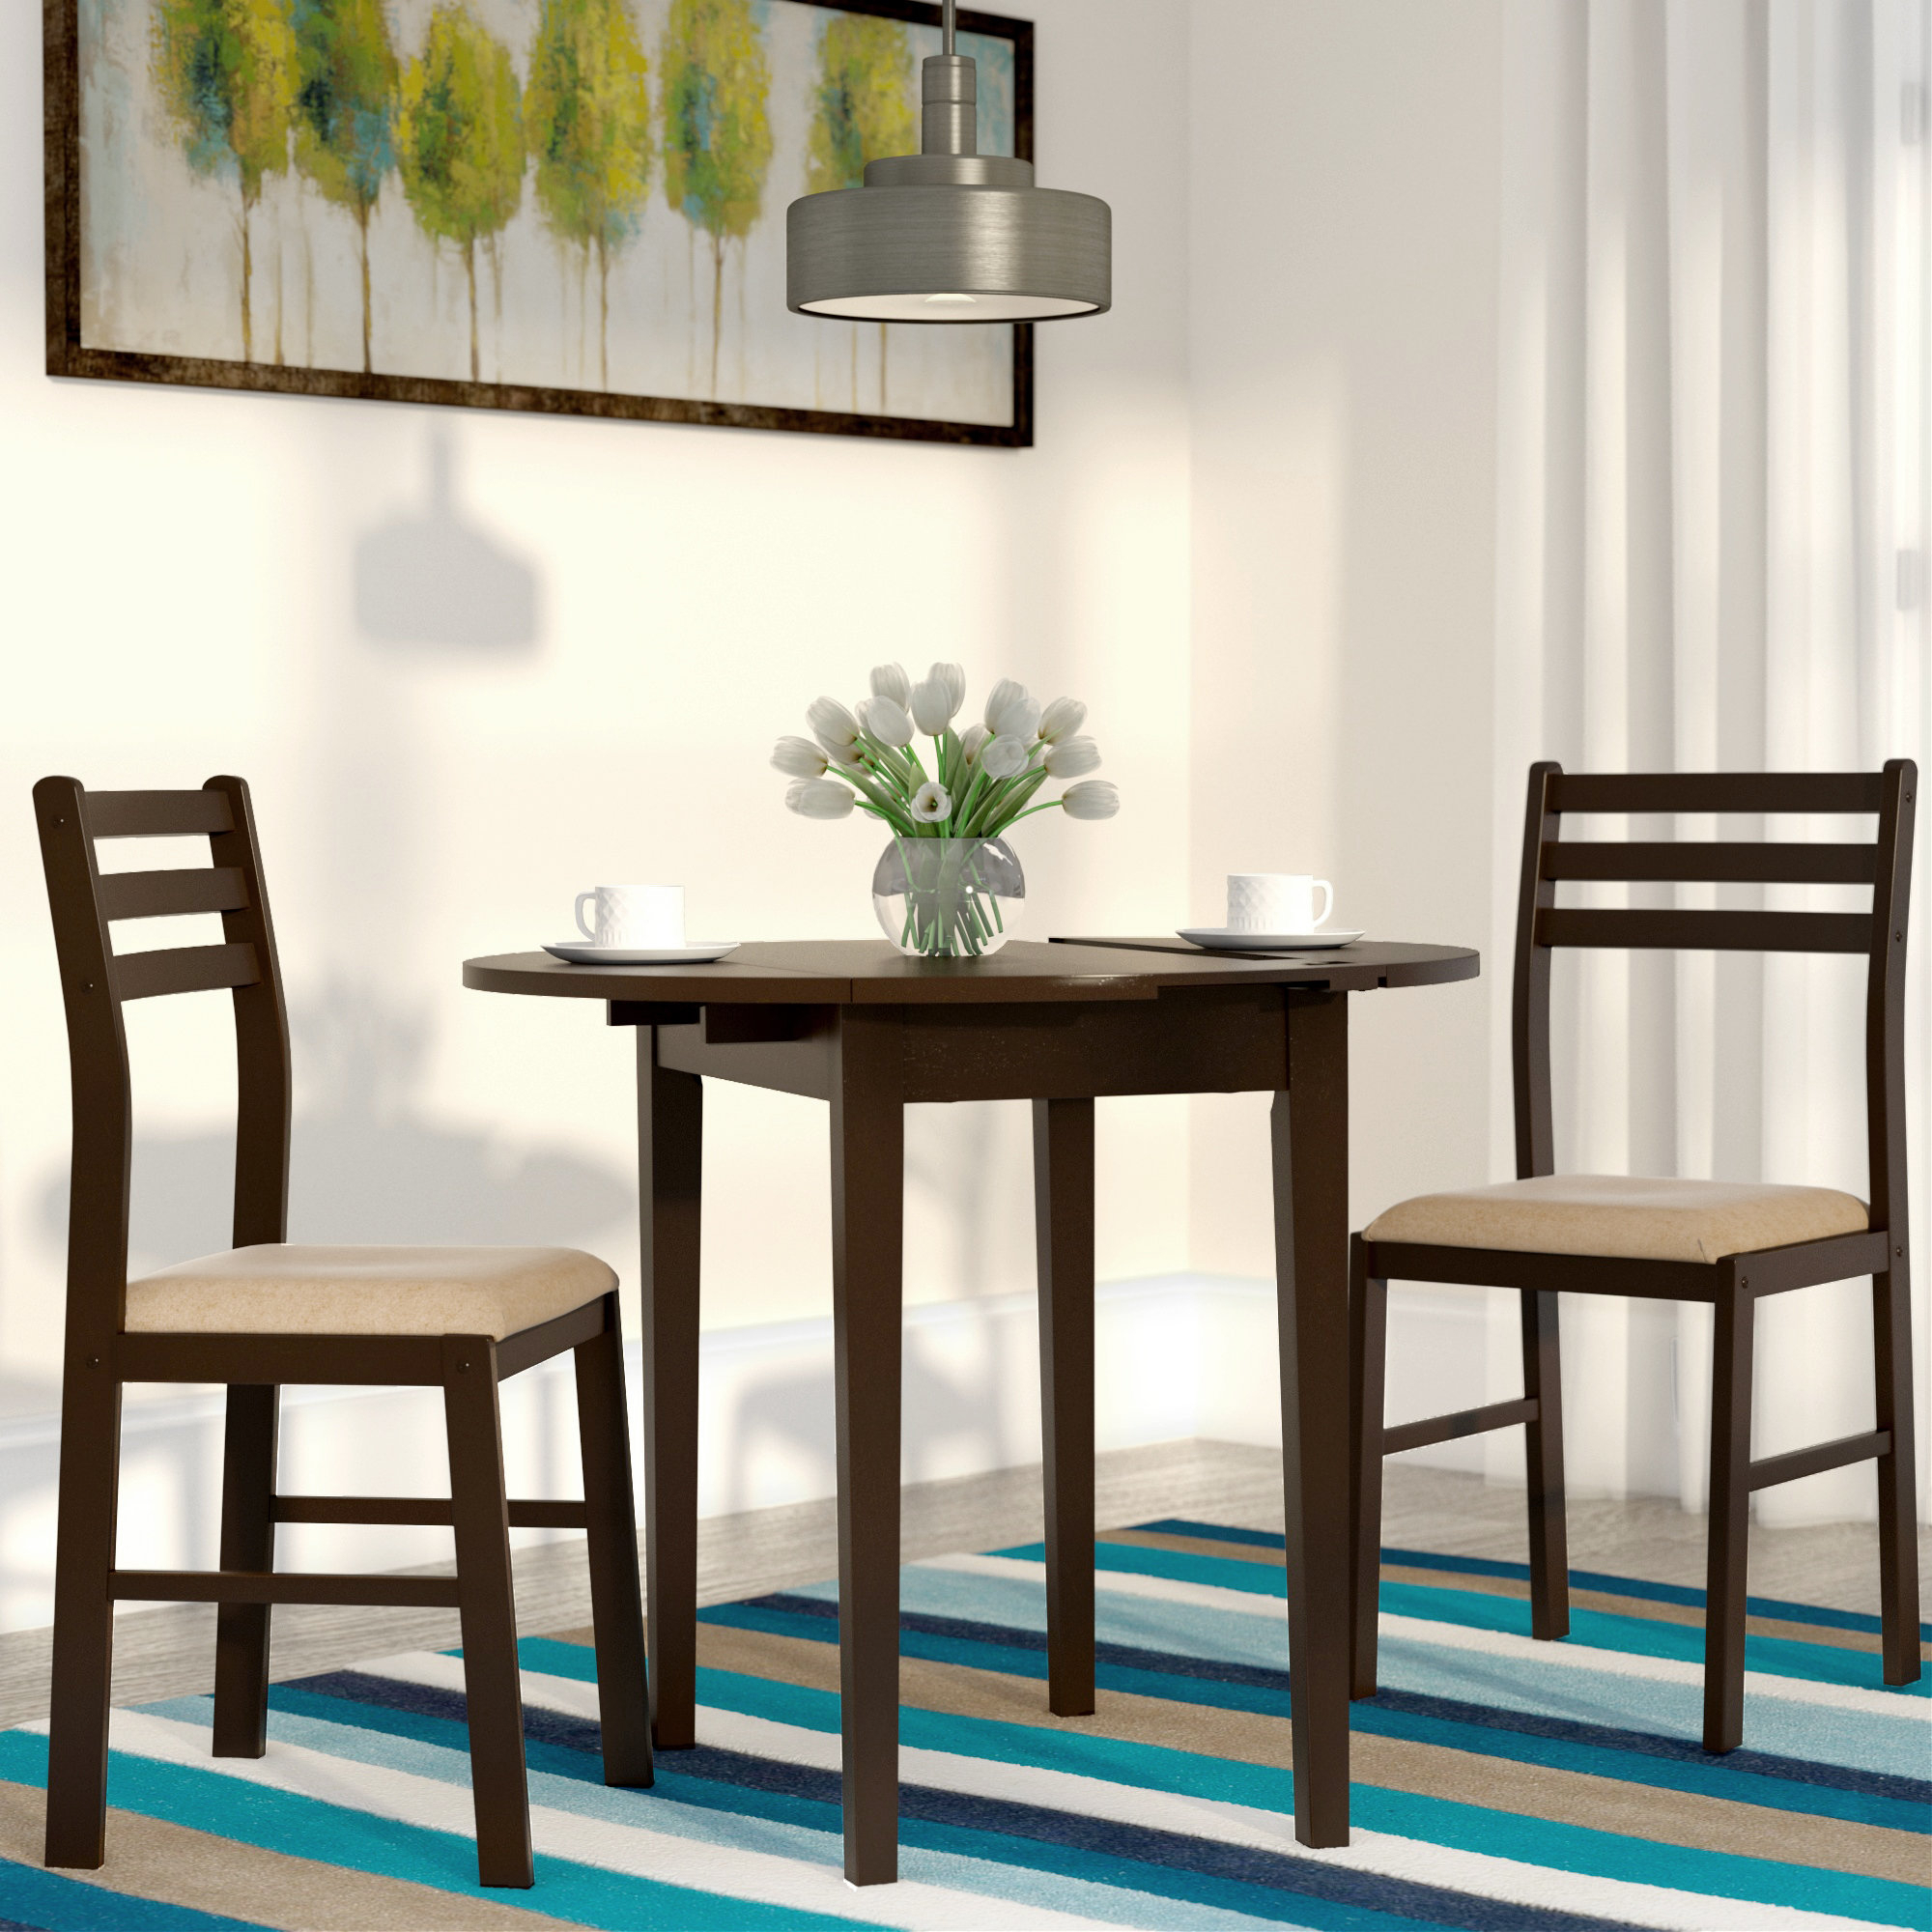 Kinsler 3 Piece Bistro Sets With Regard To Widely Used Andover Mills Lynbrook 3 Piece Dining Set & Reviews (#6 of 20)